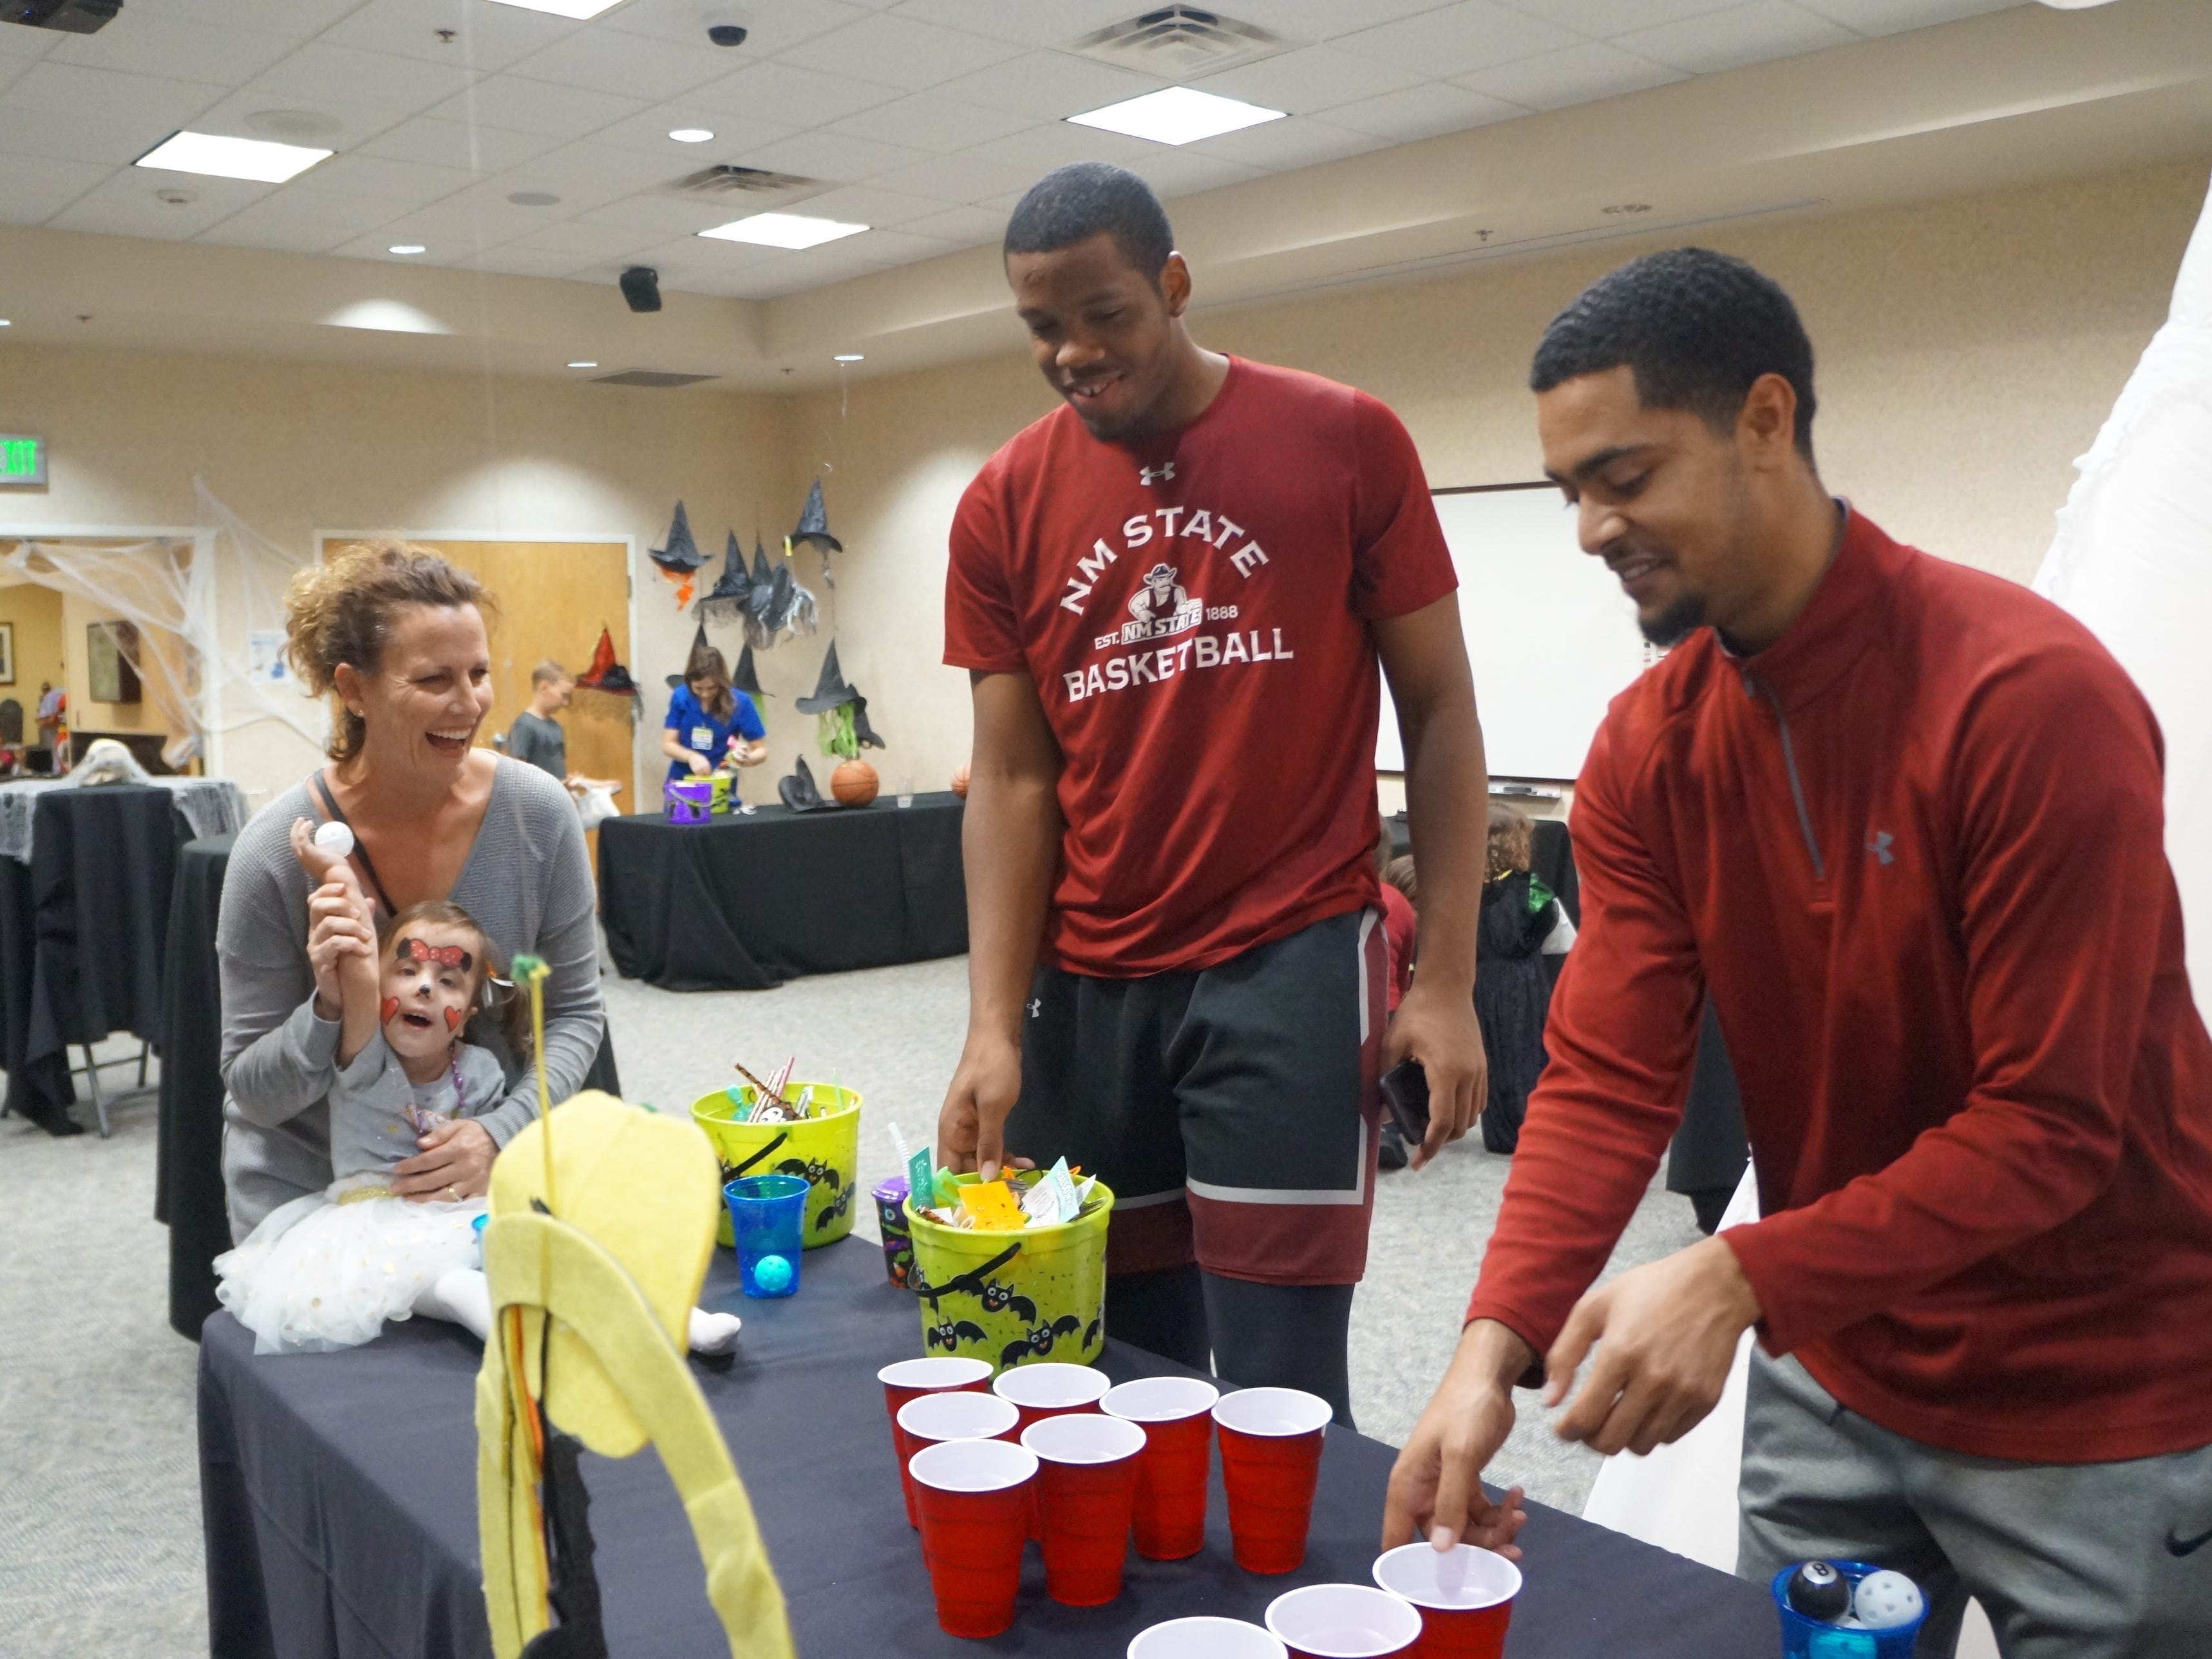 Members of the New Mexico State basketball program help out at the  Memorial Medical Center NICU Reunion Carnival. The hospital was host to a reunion of children who had been helped by the hospital's neonatal intensive care unit. Children came dressed in costume for the second NICU Reunion Carnival, held Tuesday, Oct. 30. The children, parents and hospital staff enjoyed food and games for the afternoon.